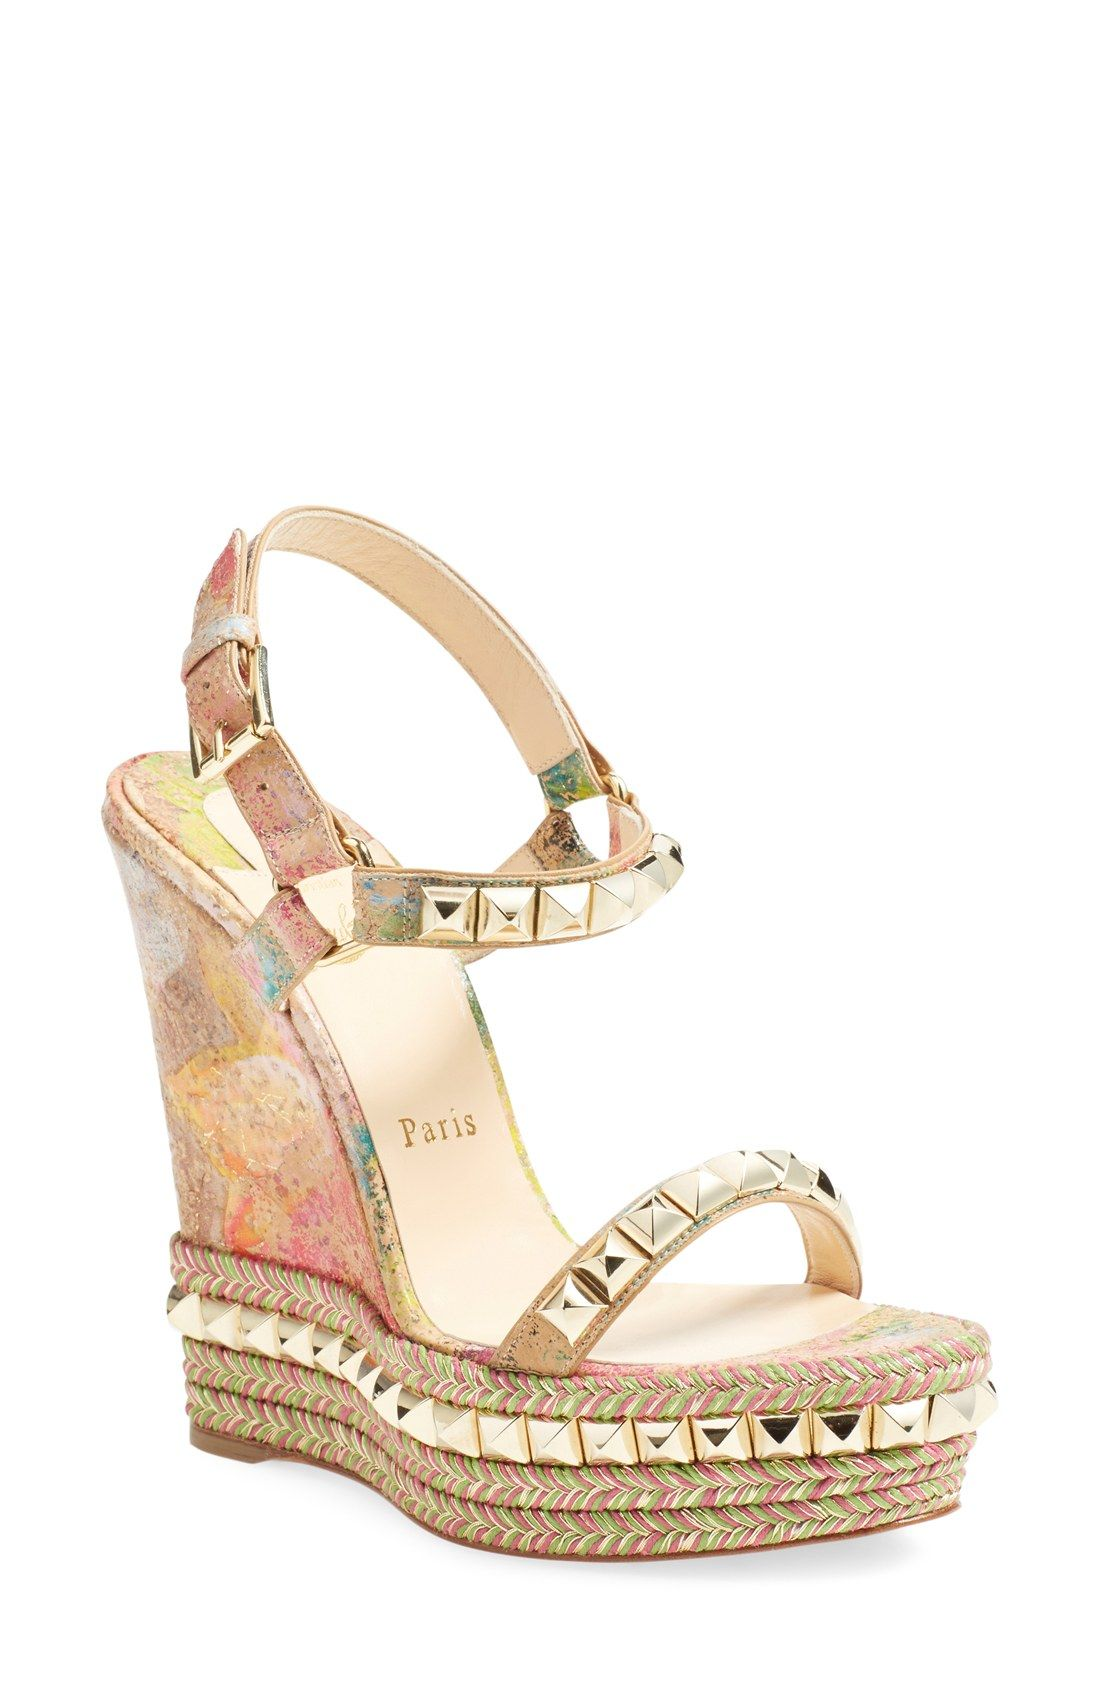 7055d94882c Christian Louboutin 'Cataclou' Wedge Espadrille Sandal | SHOESSS in ...